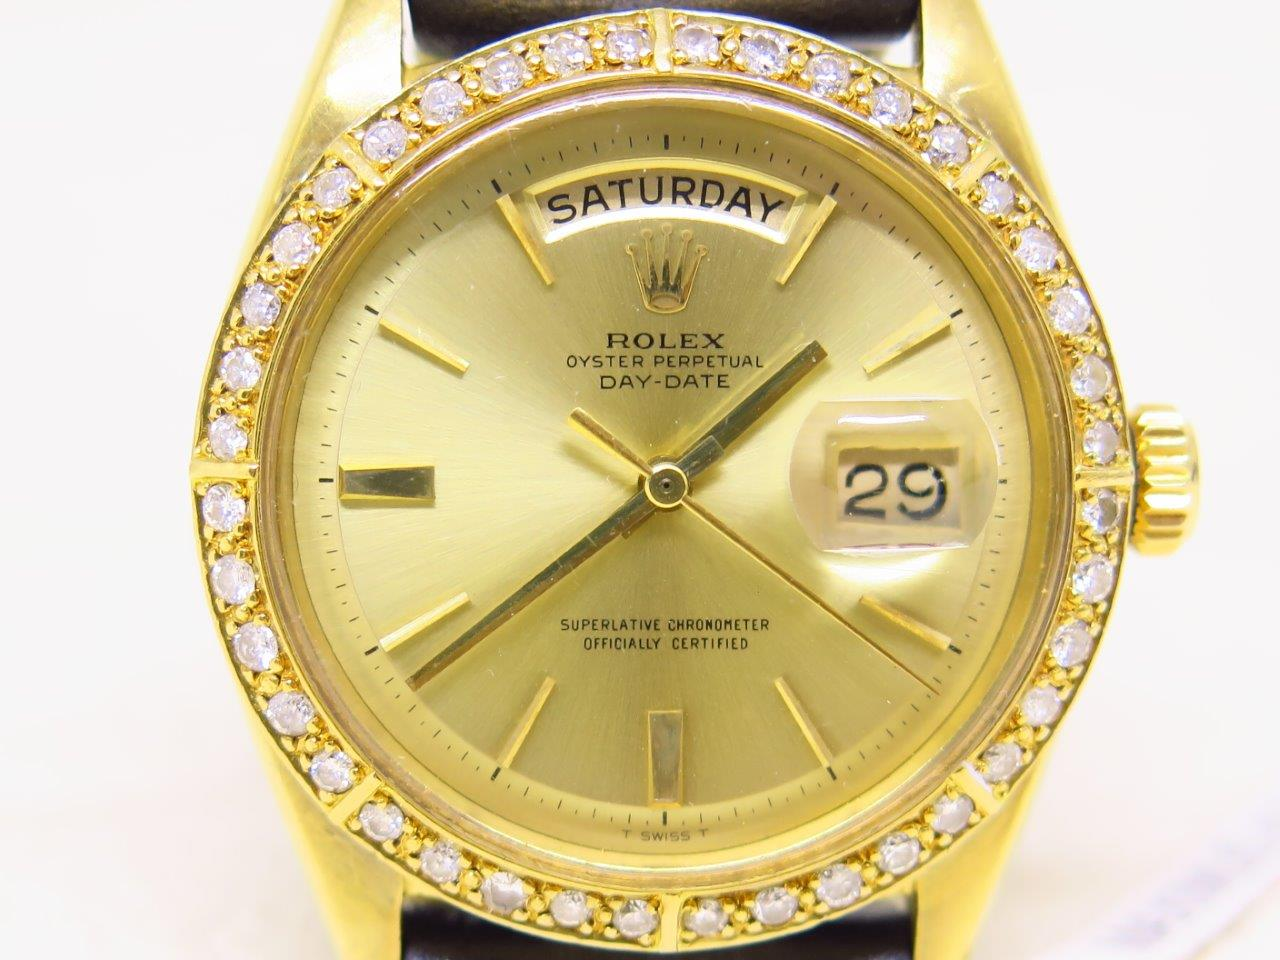 ROLEX OYSTER PERPETUAL DAY DATE DOOR STOP DIAL GOLD CASE - DIAMOND BEZEL - ROLEX 1803 DAY DATE